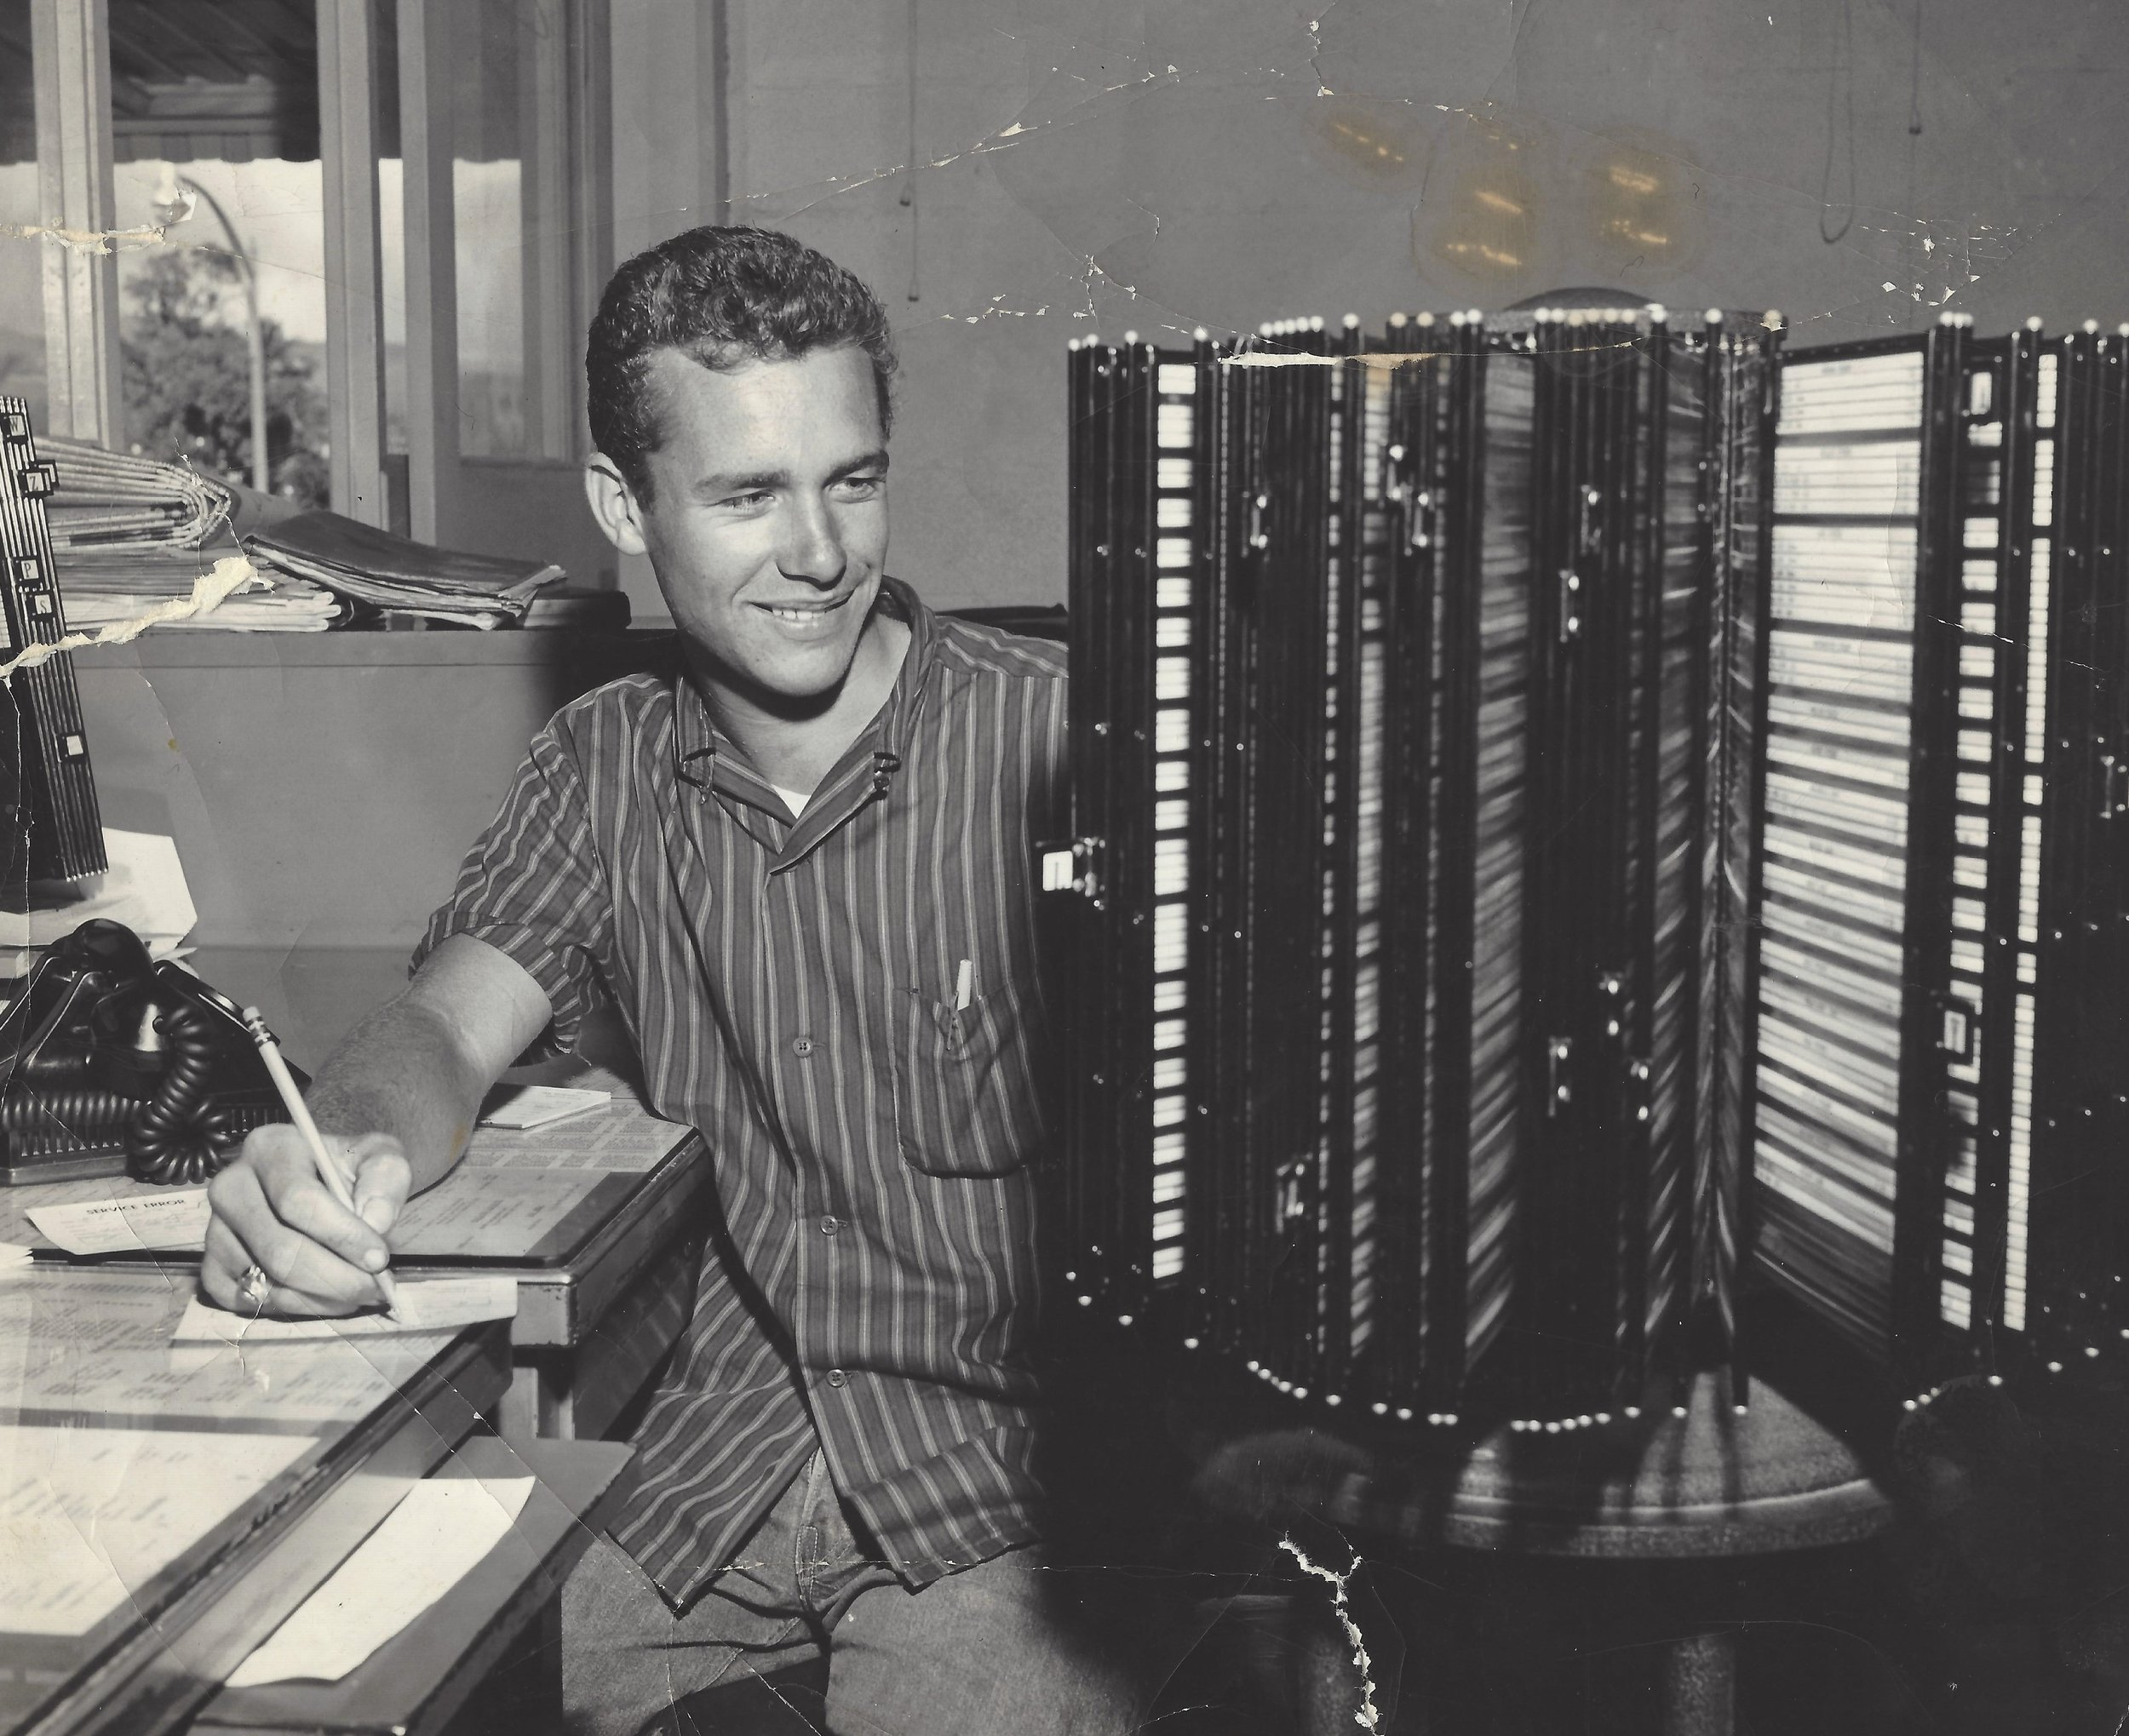 Pastor Frank working at the Honolulu Star-Bulletin while a senior in high school